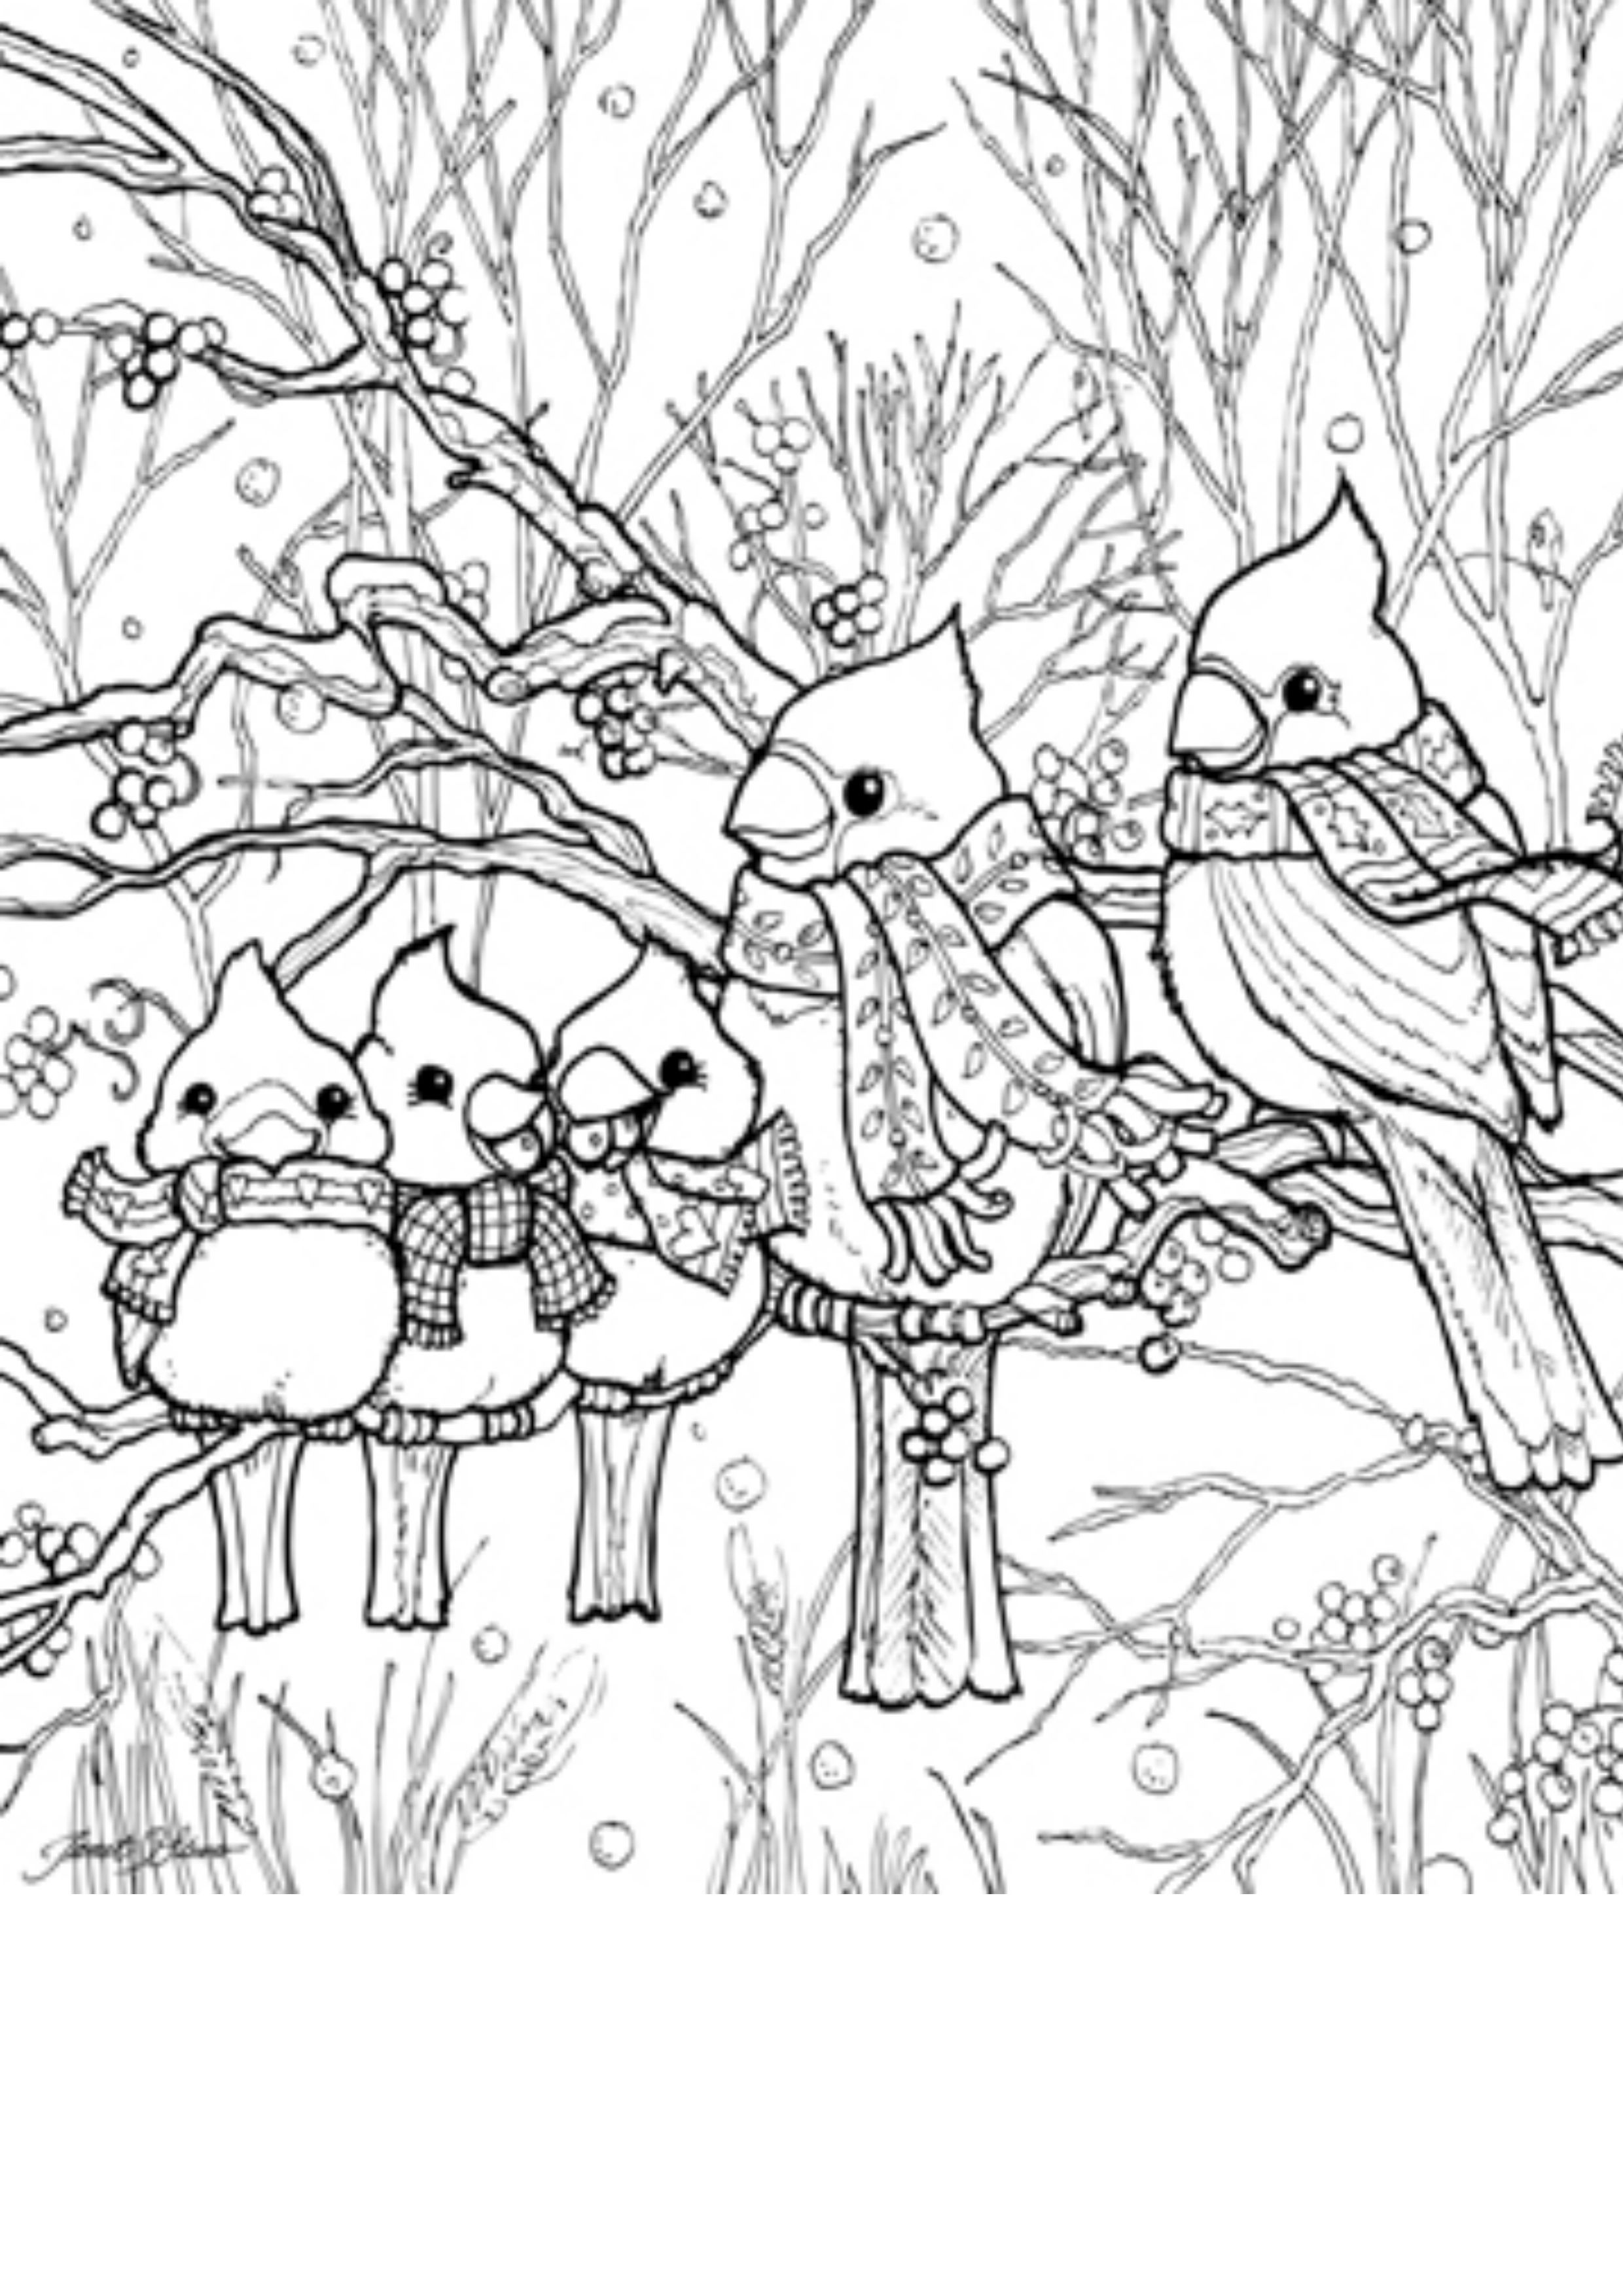 Janet Stever Animal Coloring Pages Coloring Pages Family Coloring Pages In 2021 Family Coloring Pages Animal Coloring Pages Coloring Pages